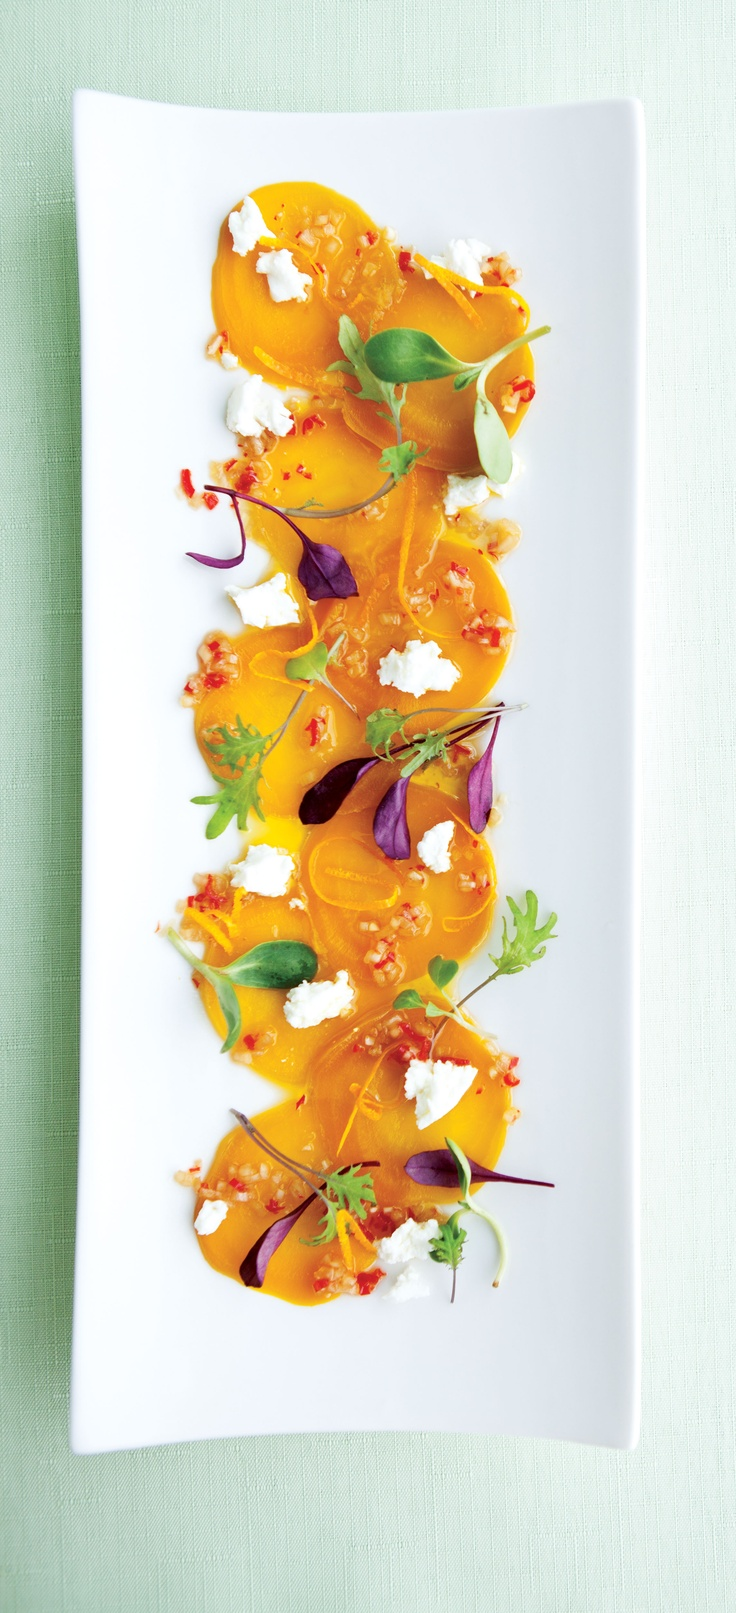 Fall veggies are vibrantly featured with this yellow beet salad ...